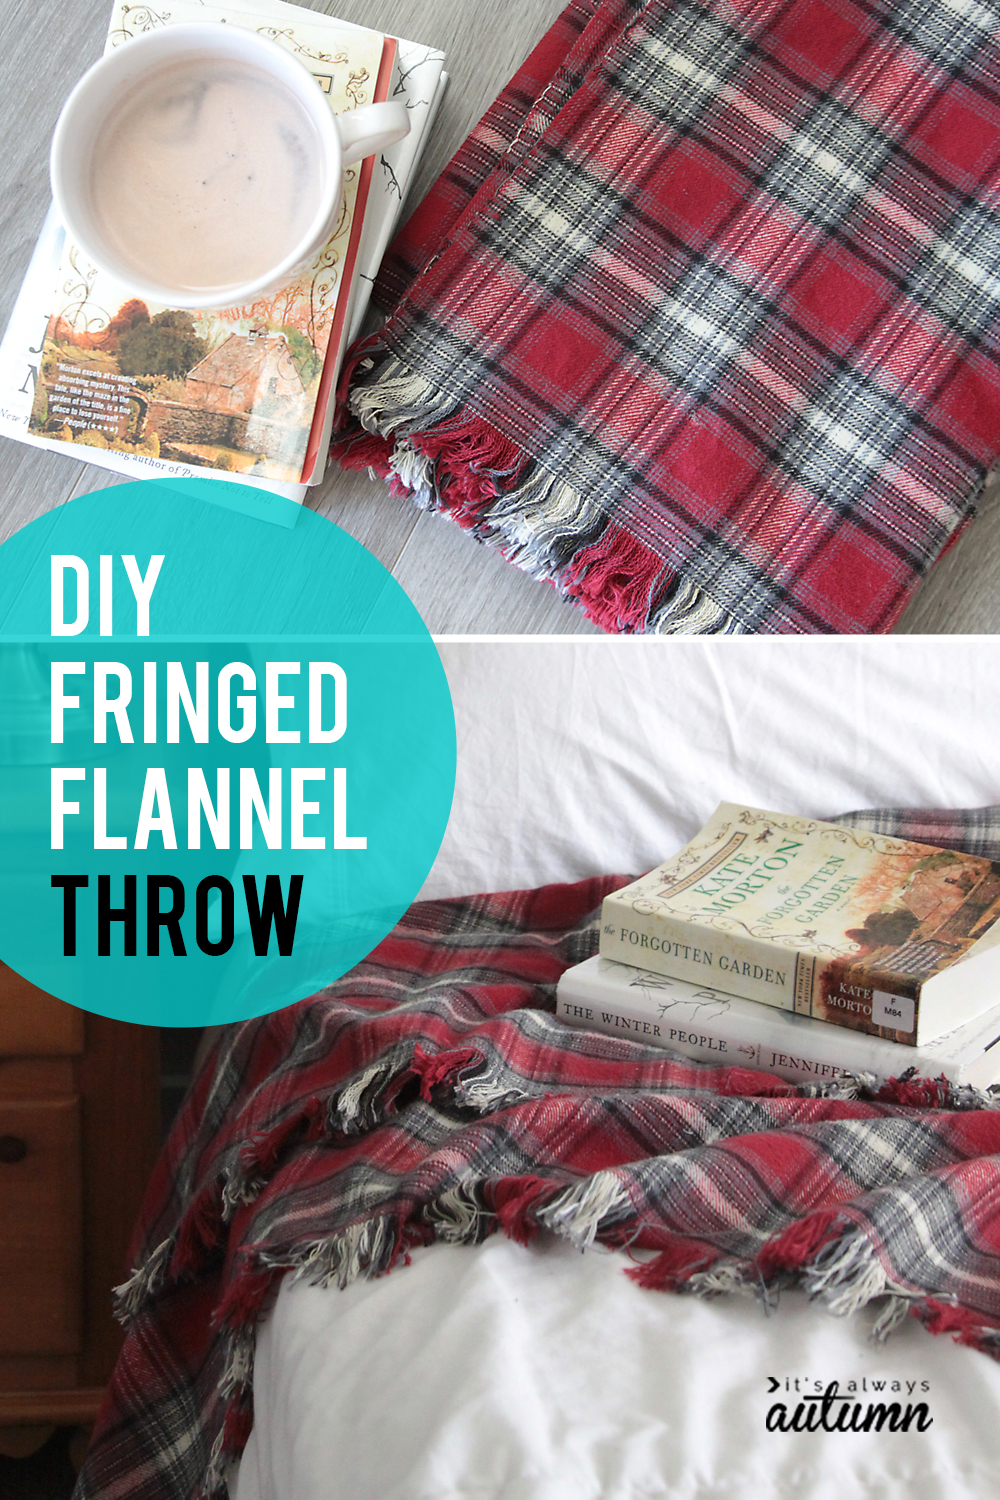 Learn how easy it is to make this DIY flannel throw blanket with cute fringed edge.